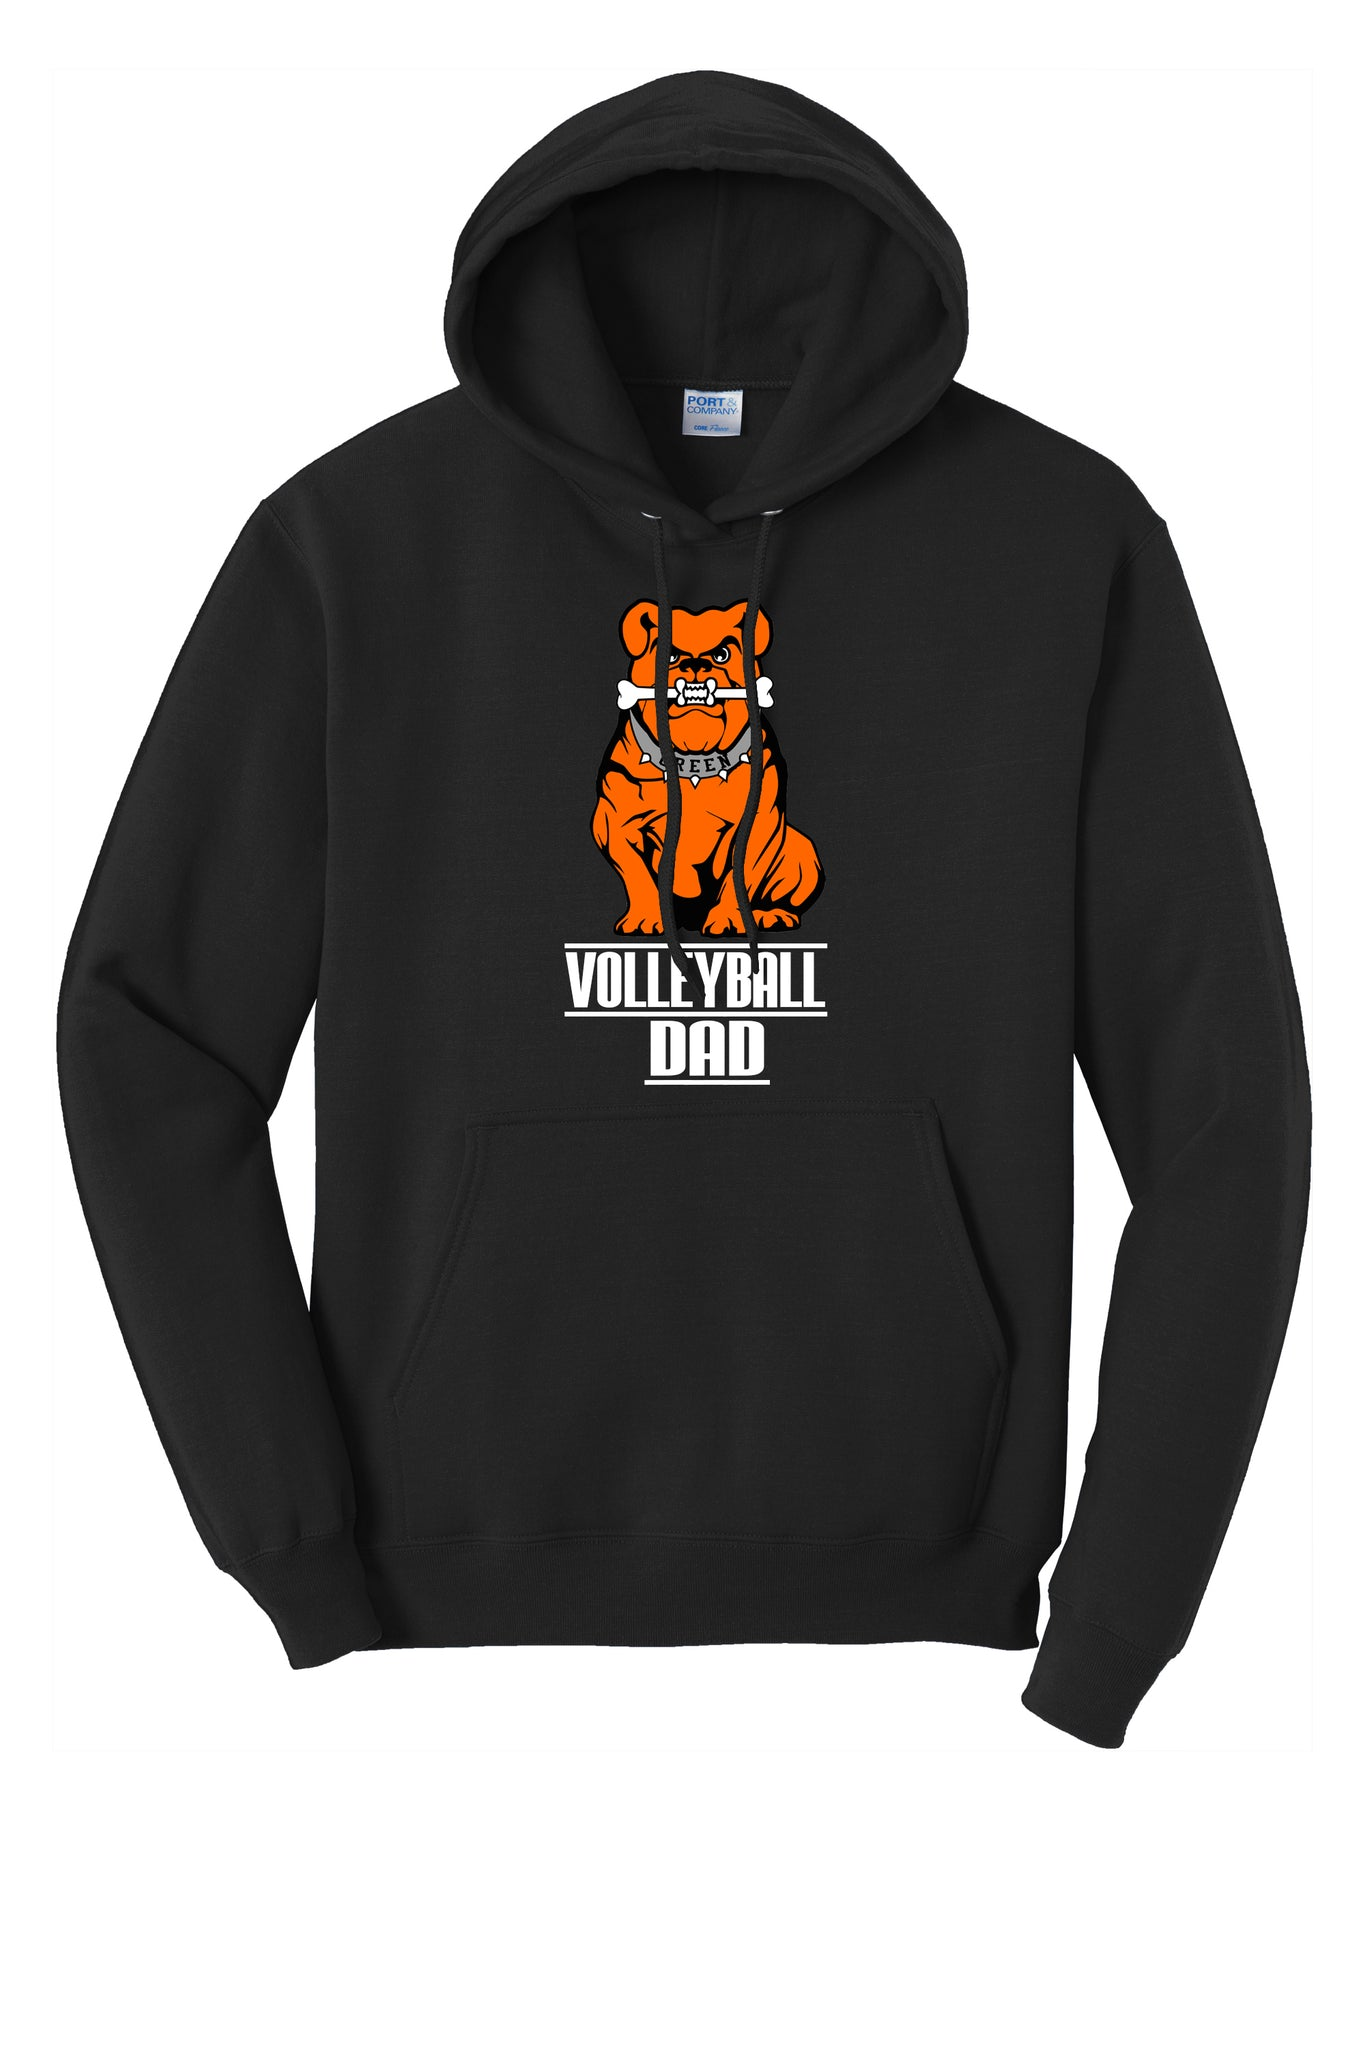 Green Volleyball Unisex Hooded Sweatshirt